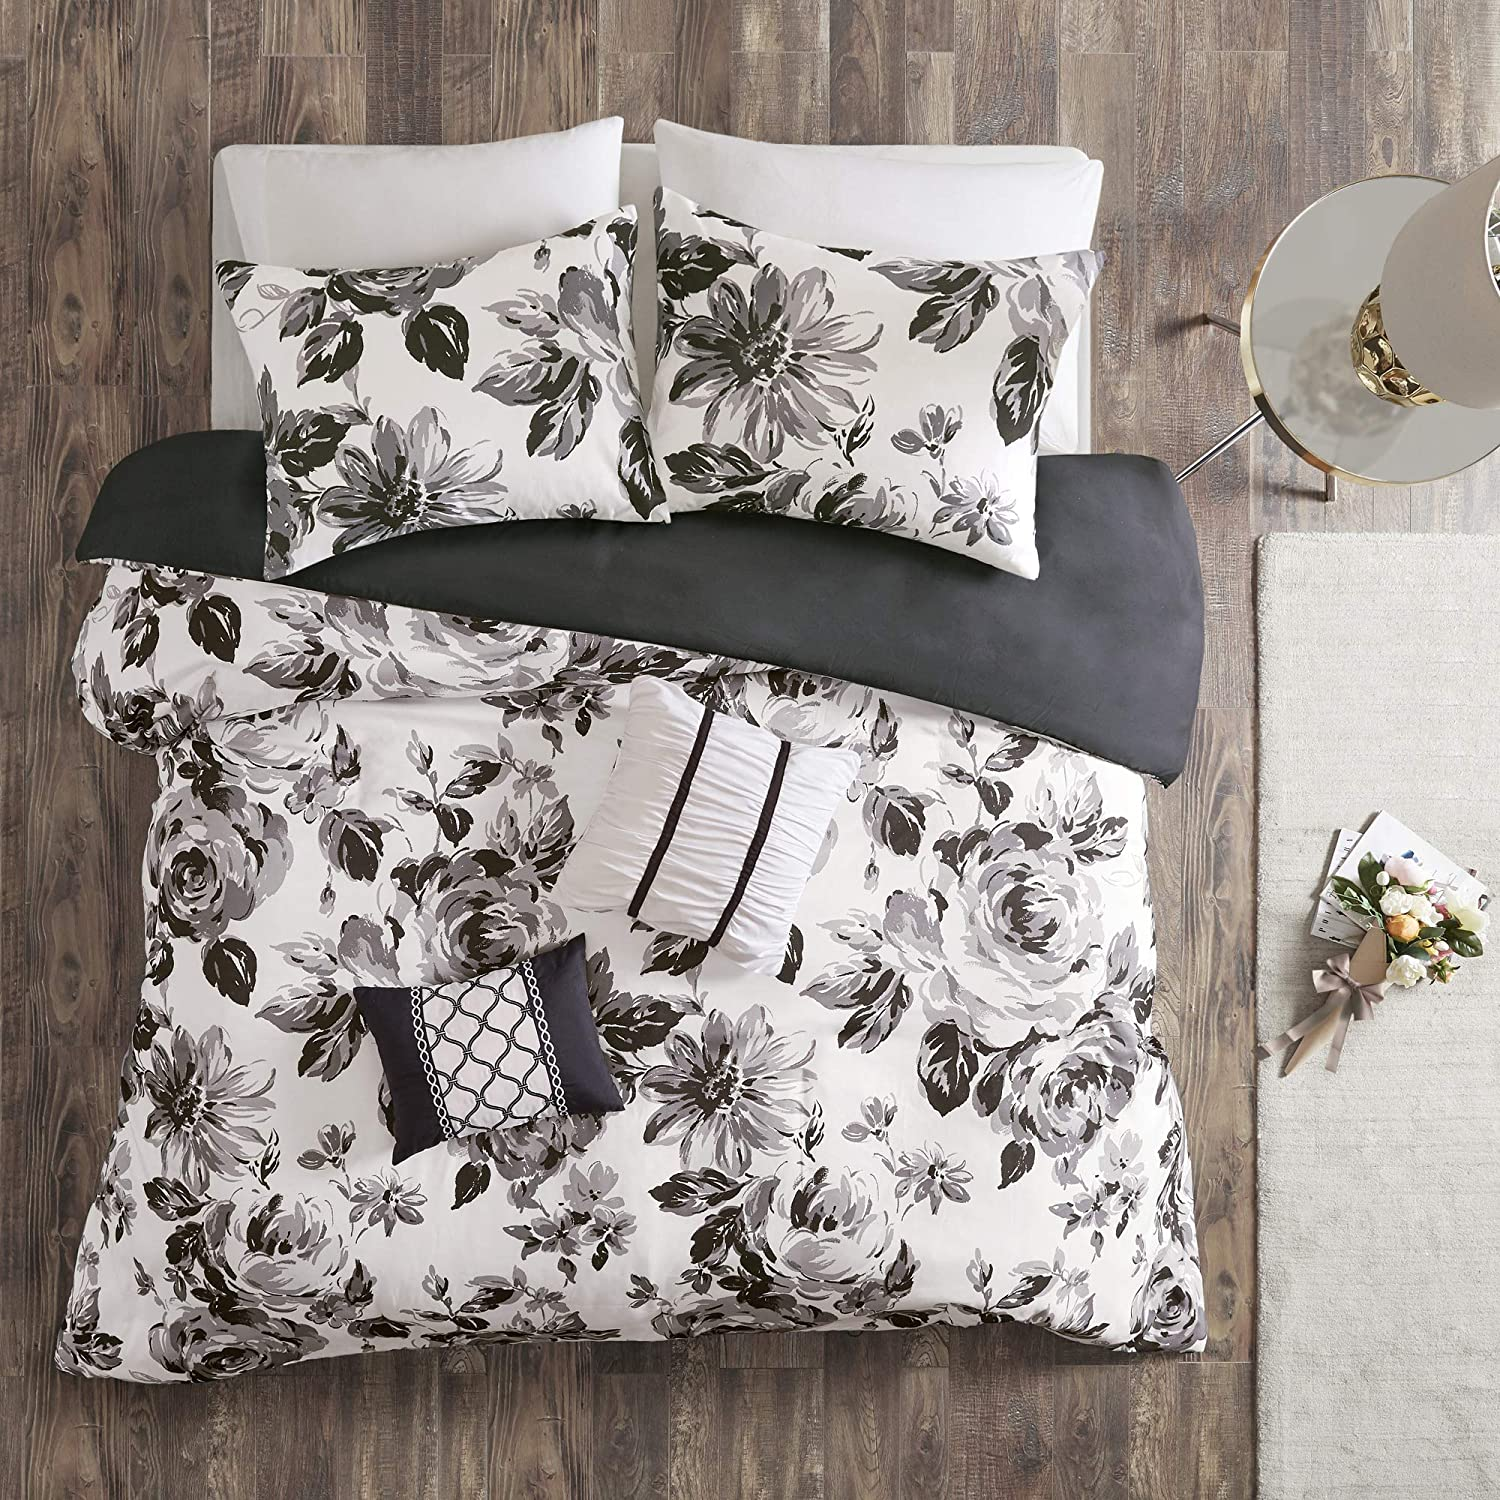 Intelligent Design Dorsey Duvet Cover Reversible Flower Floral Metallic Printed 100% Brushed Ultra-Soft Corner Ties Buttoned Embroidered Pillow All Season Bedding-Set, Full/Queen, Black/White